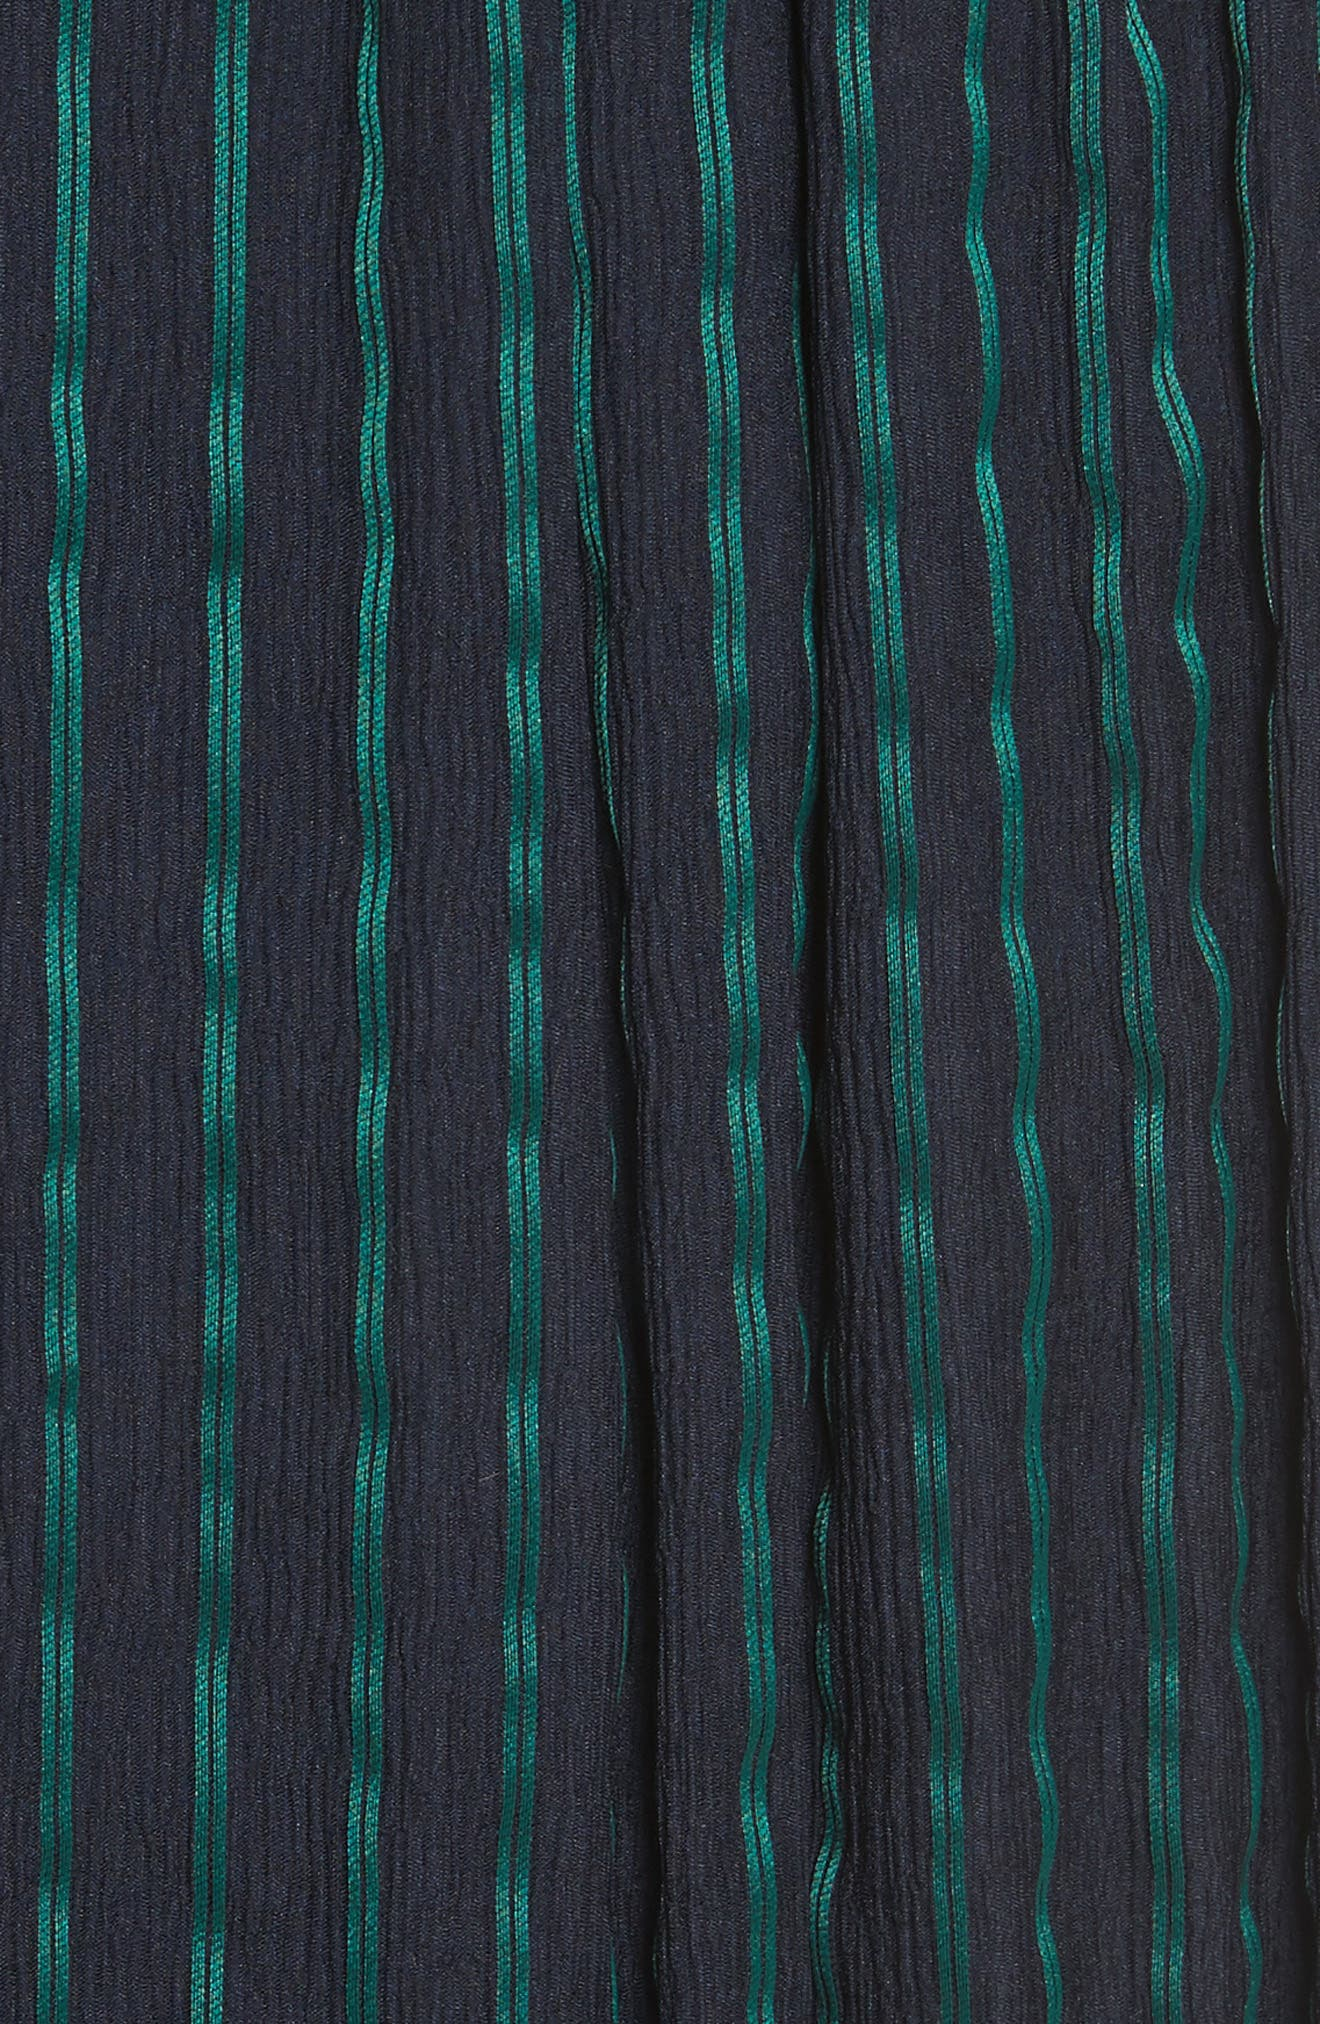 Stripe Chiffon Dress,                             Alternate thumbnail 5, color,                             Midnight/ Emerald